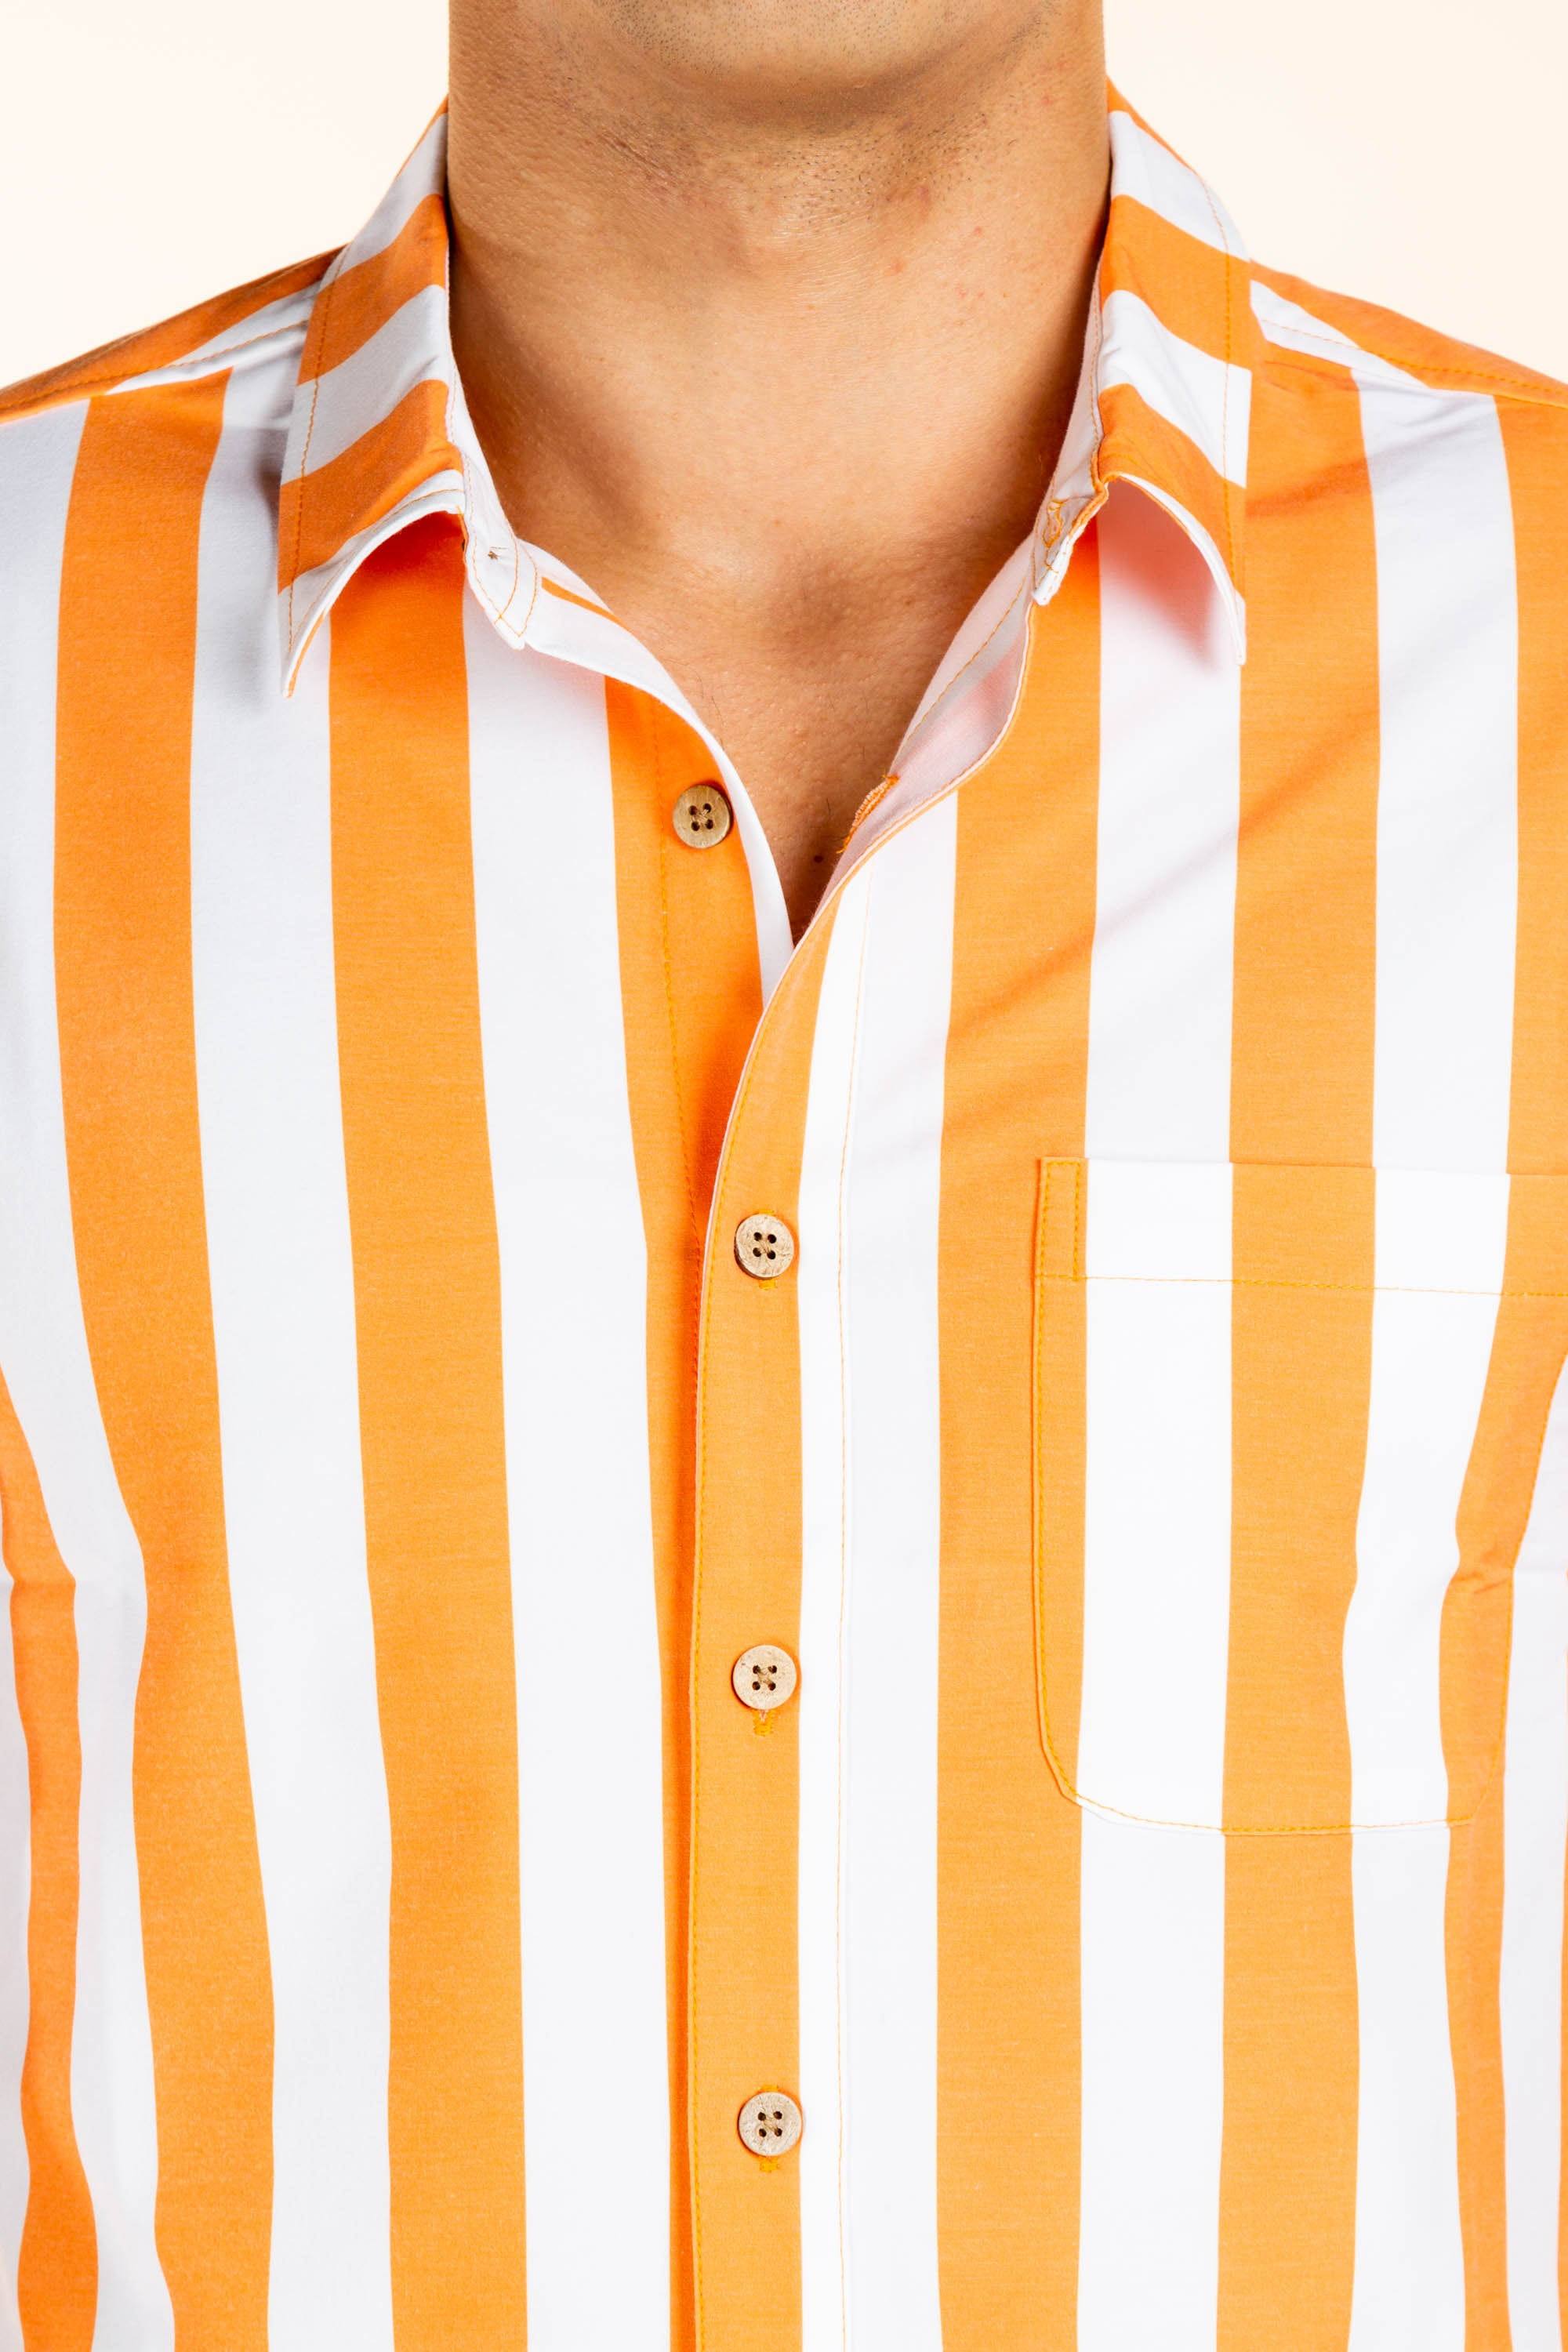 University of Tennessee Striped Game Day Shirt